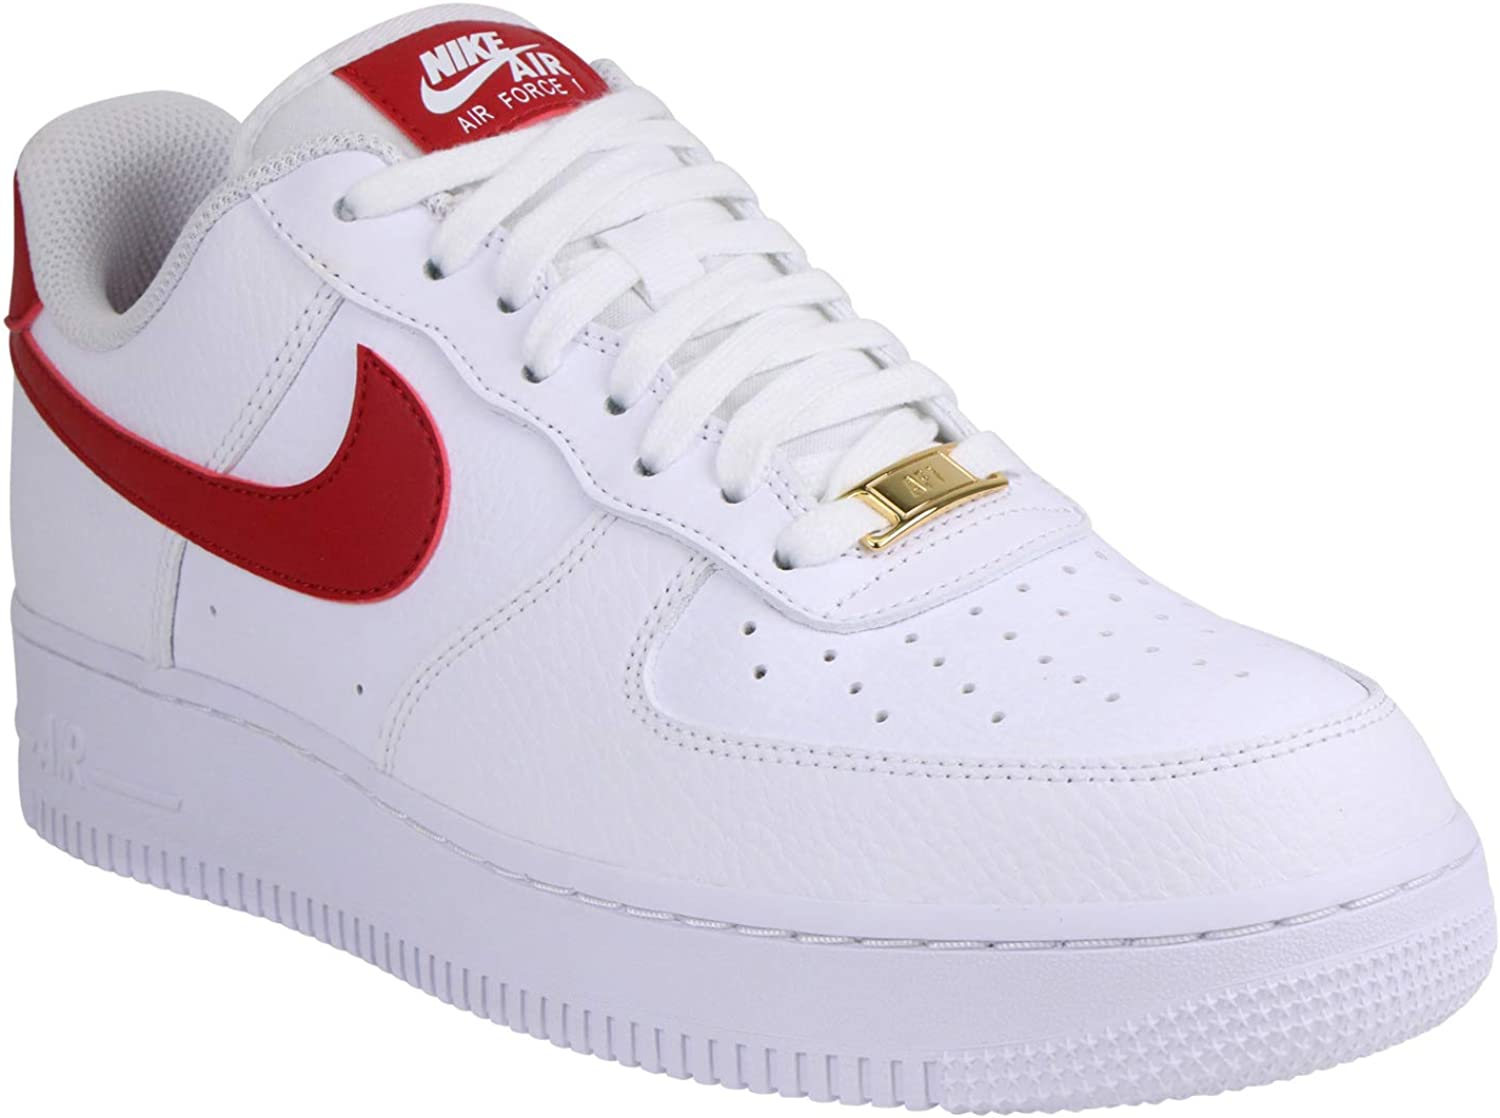 Nike Women's Air Force 1 '07 WhiteWild Cherry Noble Red